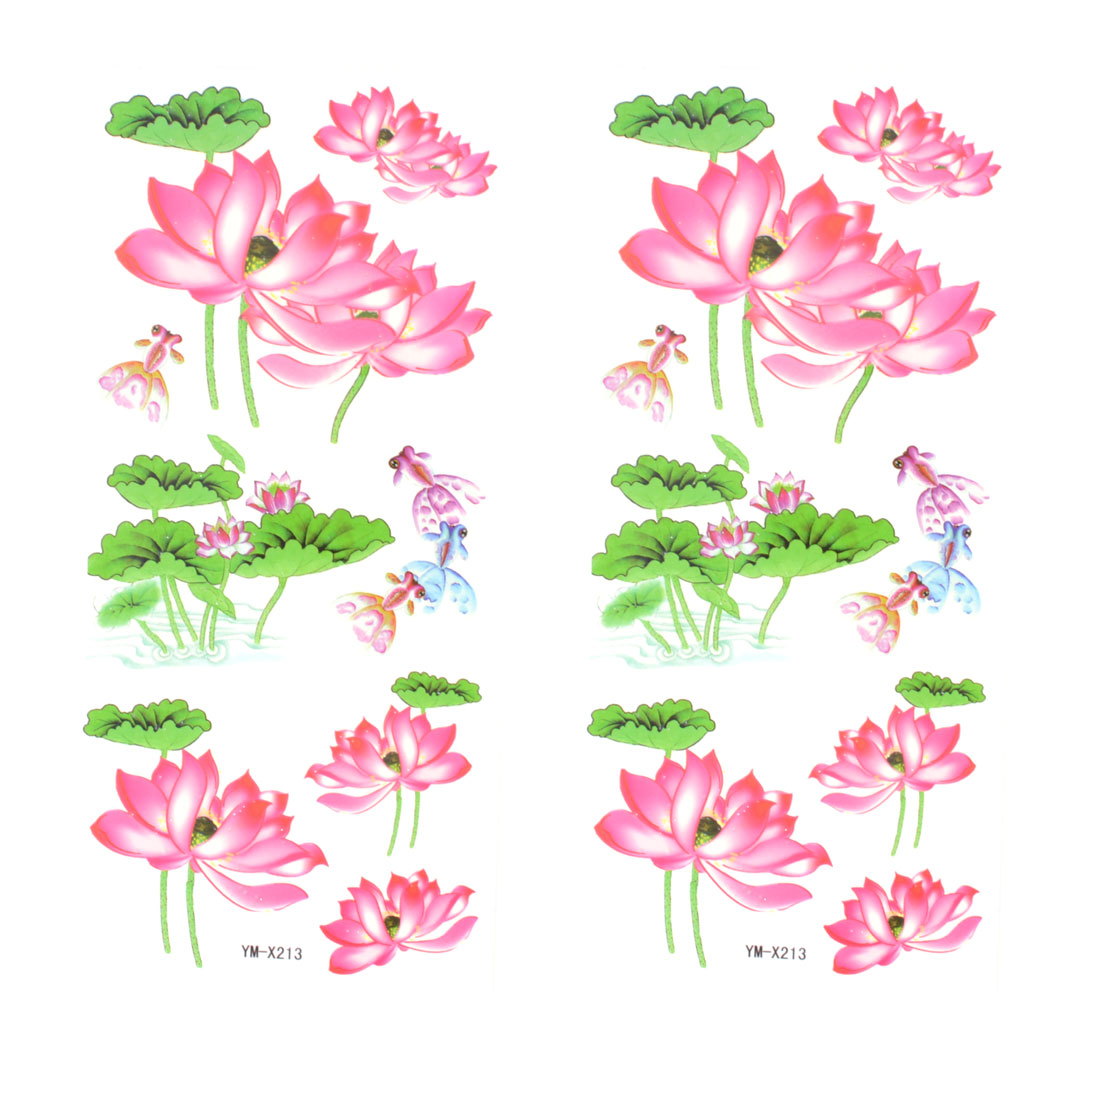 Skin Embellish Pink Lotus Flower Pattern Temporary Tattoo Transfer Sticker 2 Pcs